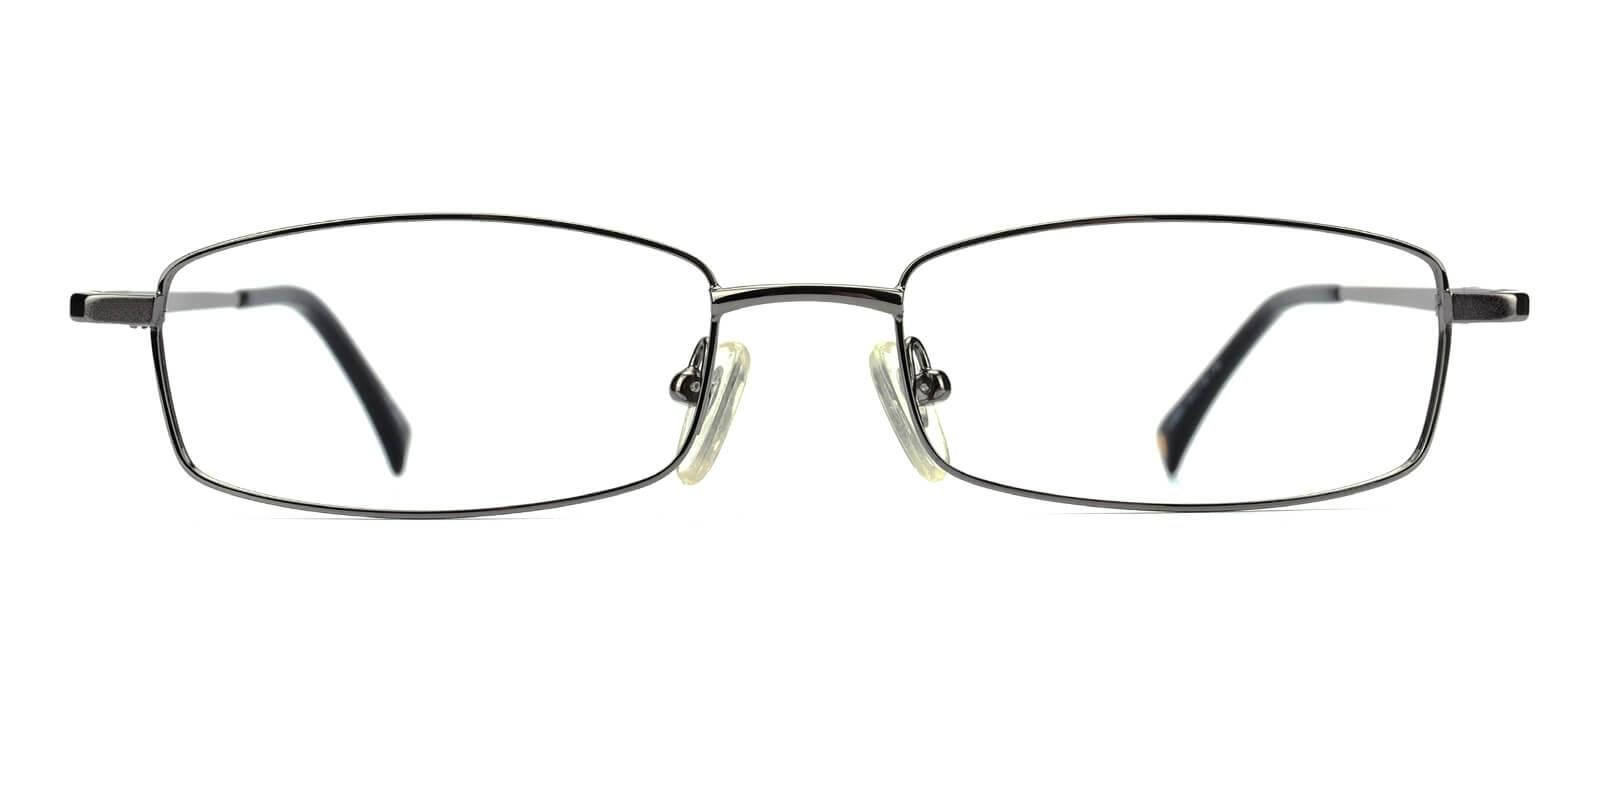 Chistopol-Gun-Rectangle-Metal-Eyeglasses-additional2